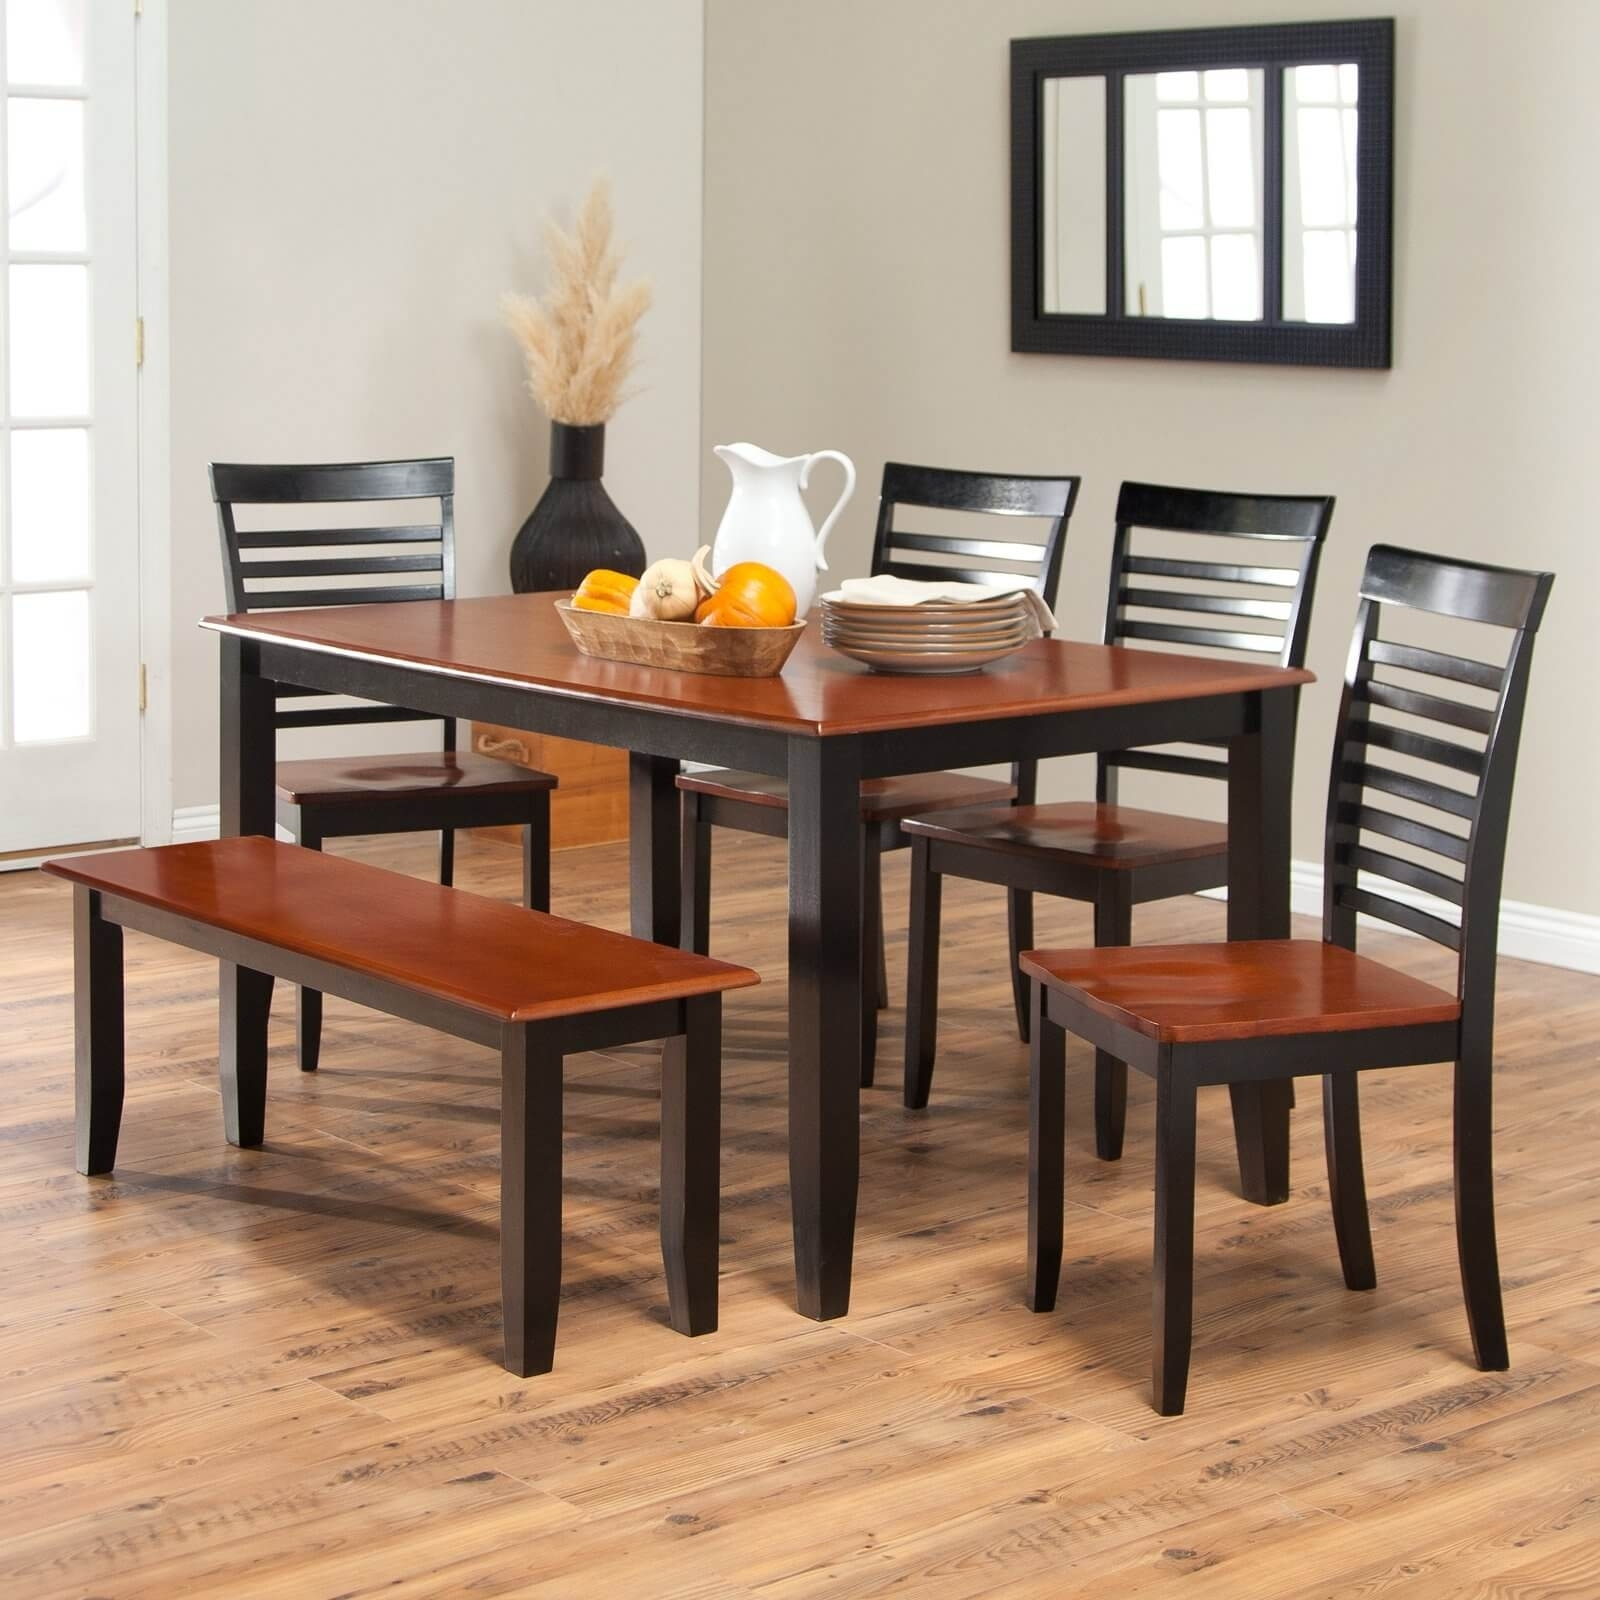 26 Dining Room Sets (Big And Small) With Bench Seating (2018) For Best And Newest Craftsman 5 Piece Round Dining Sets With Side Chairs (Image 1 of 20)